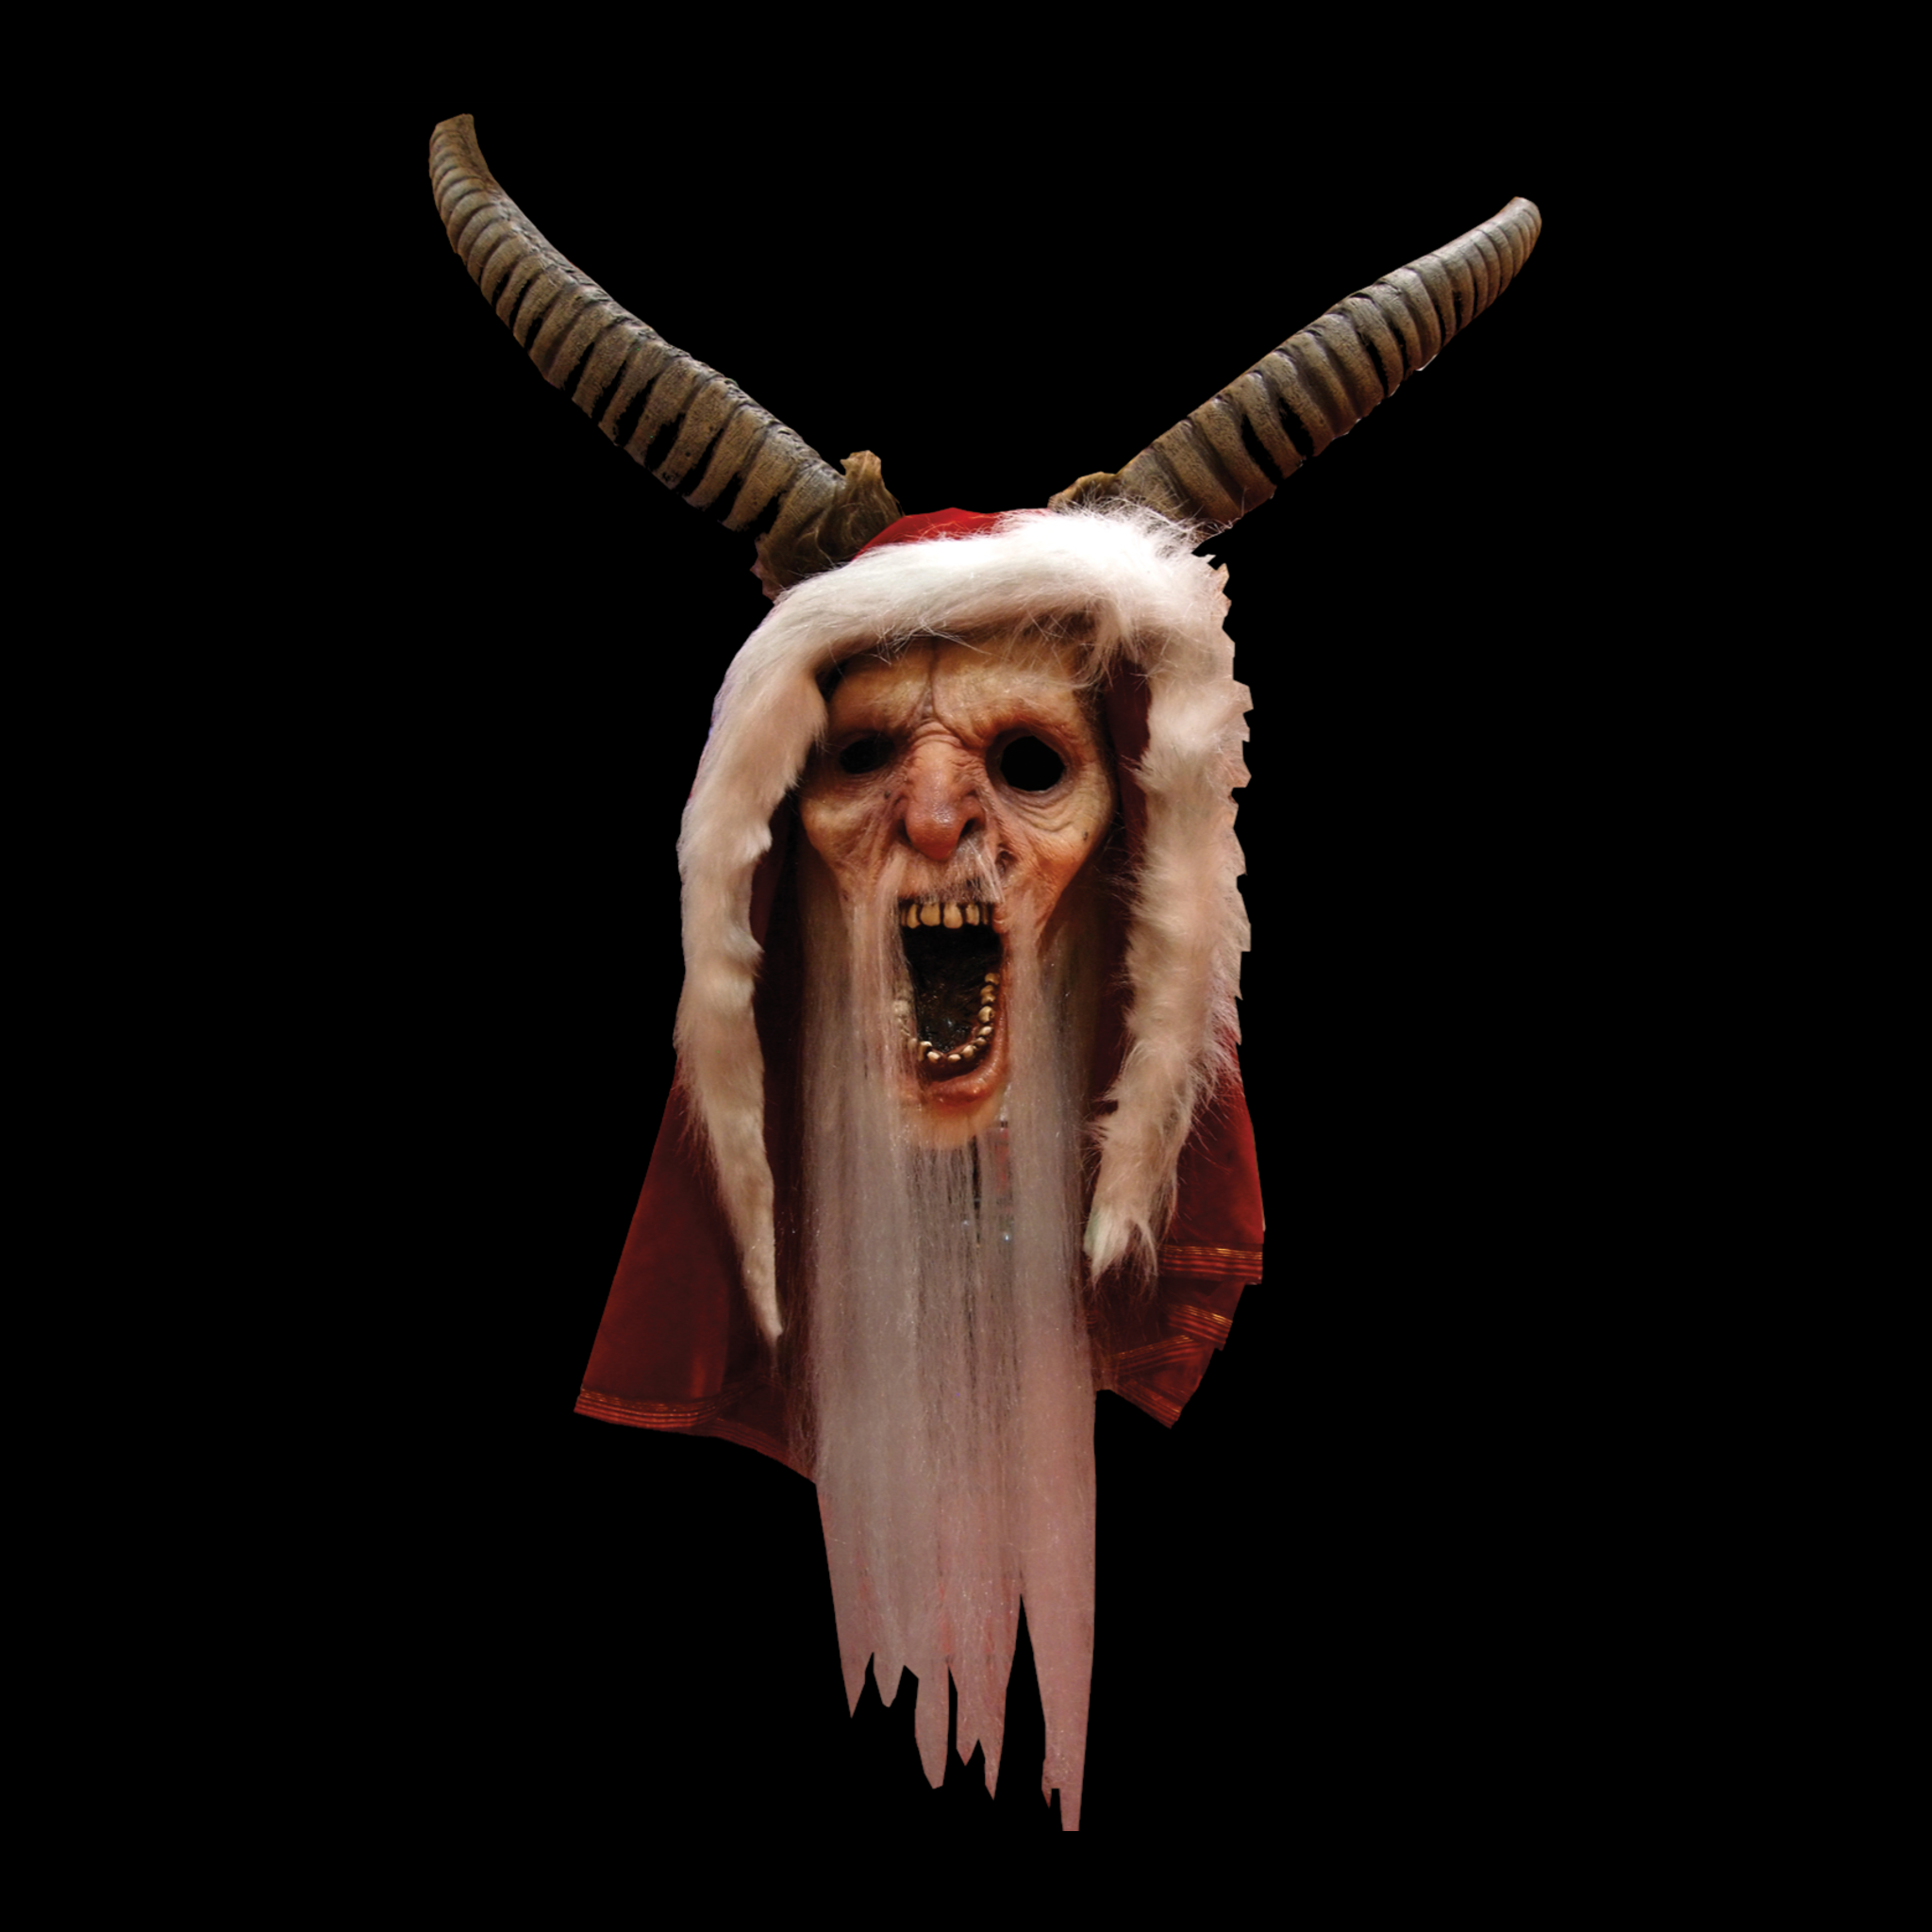 Krampus Latex Halloween Mask - Metalhead Art & Design, LLC